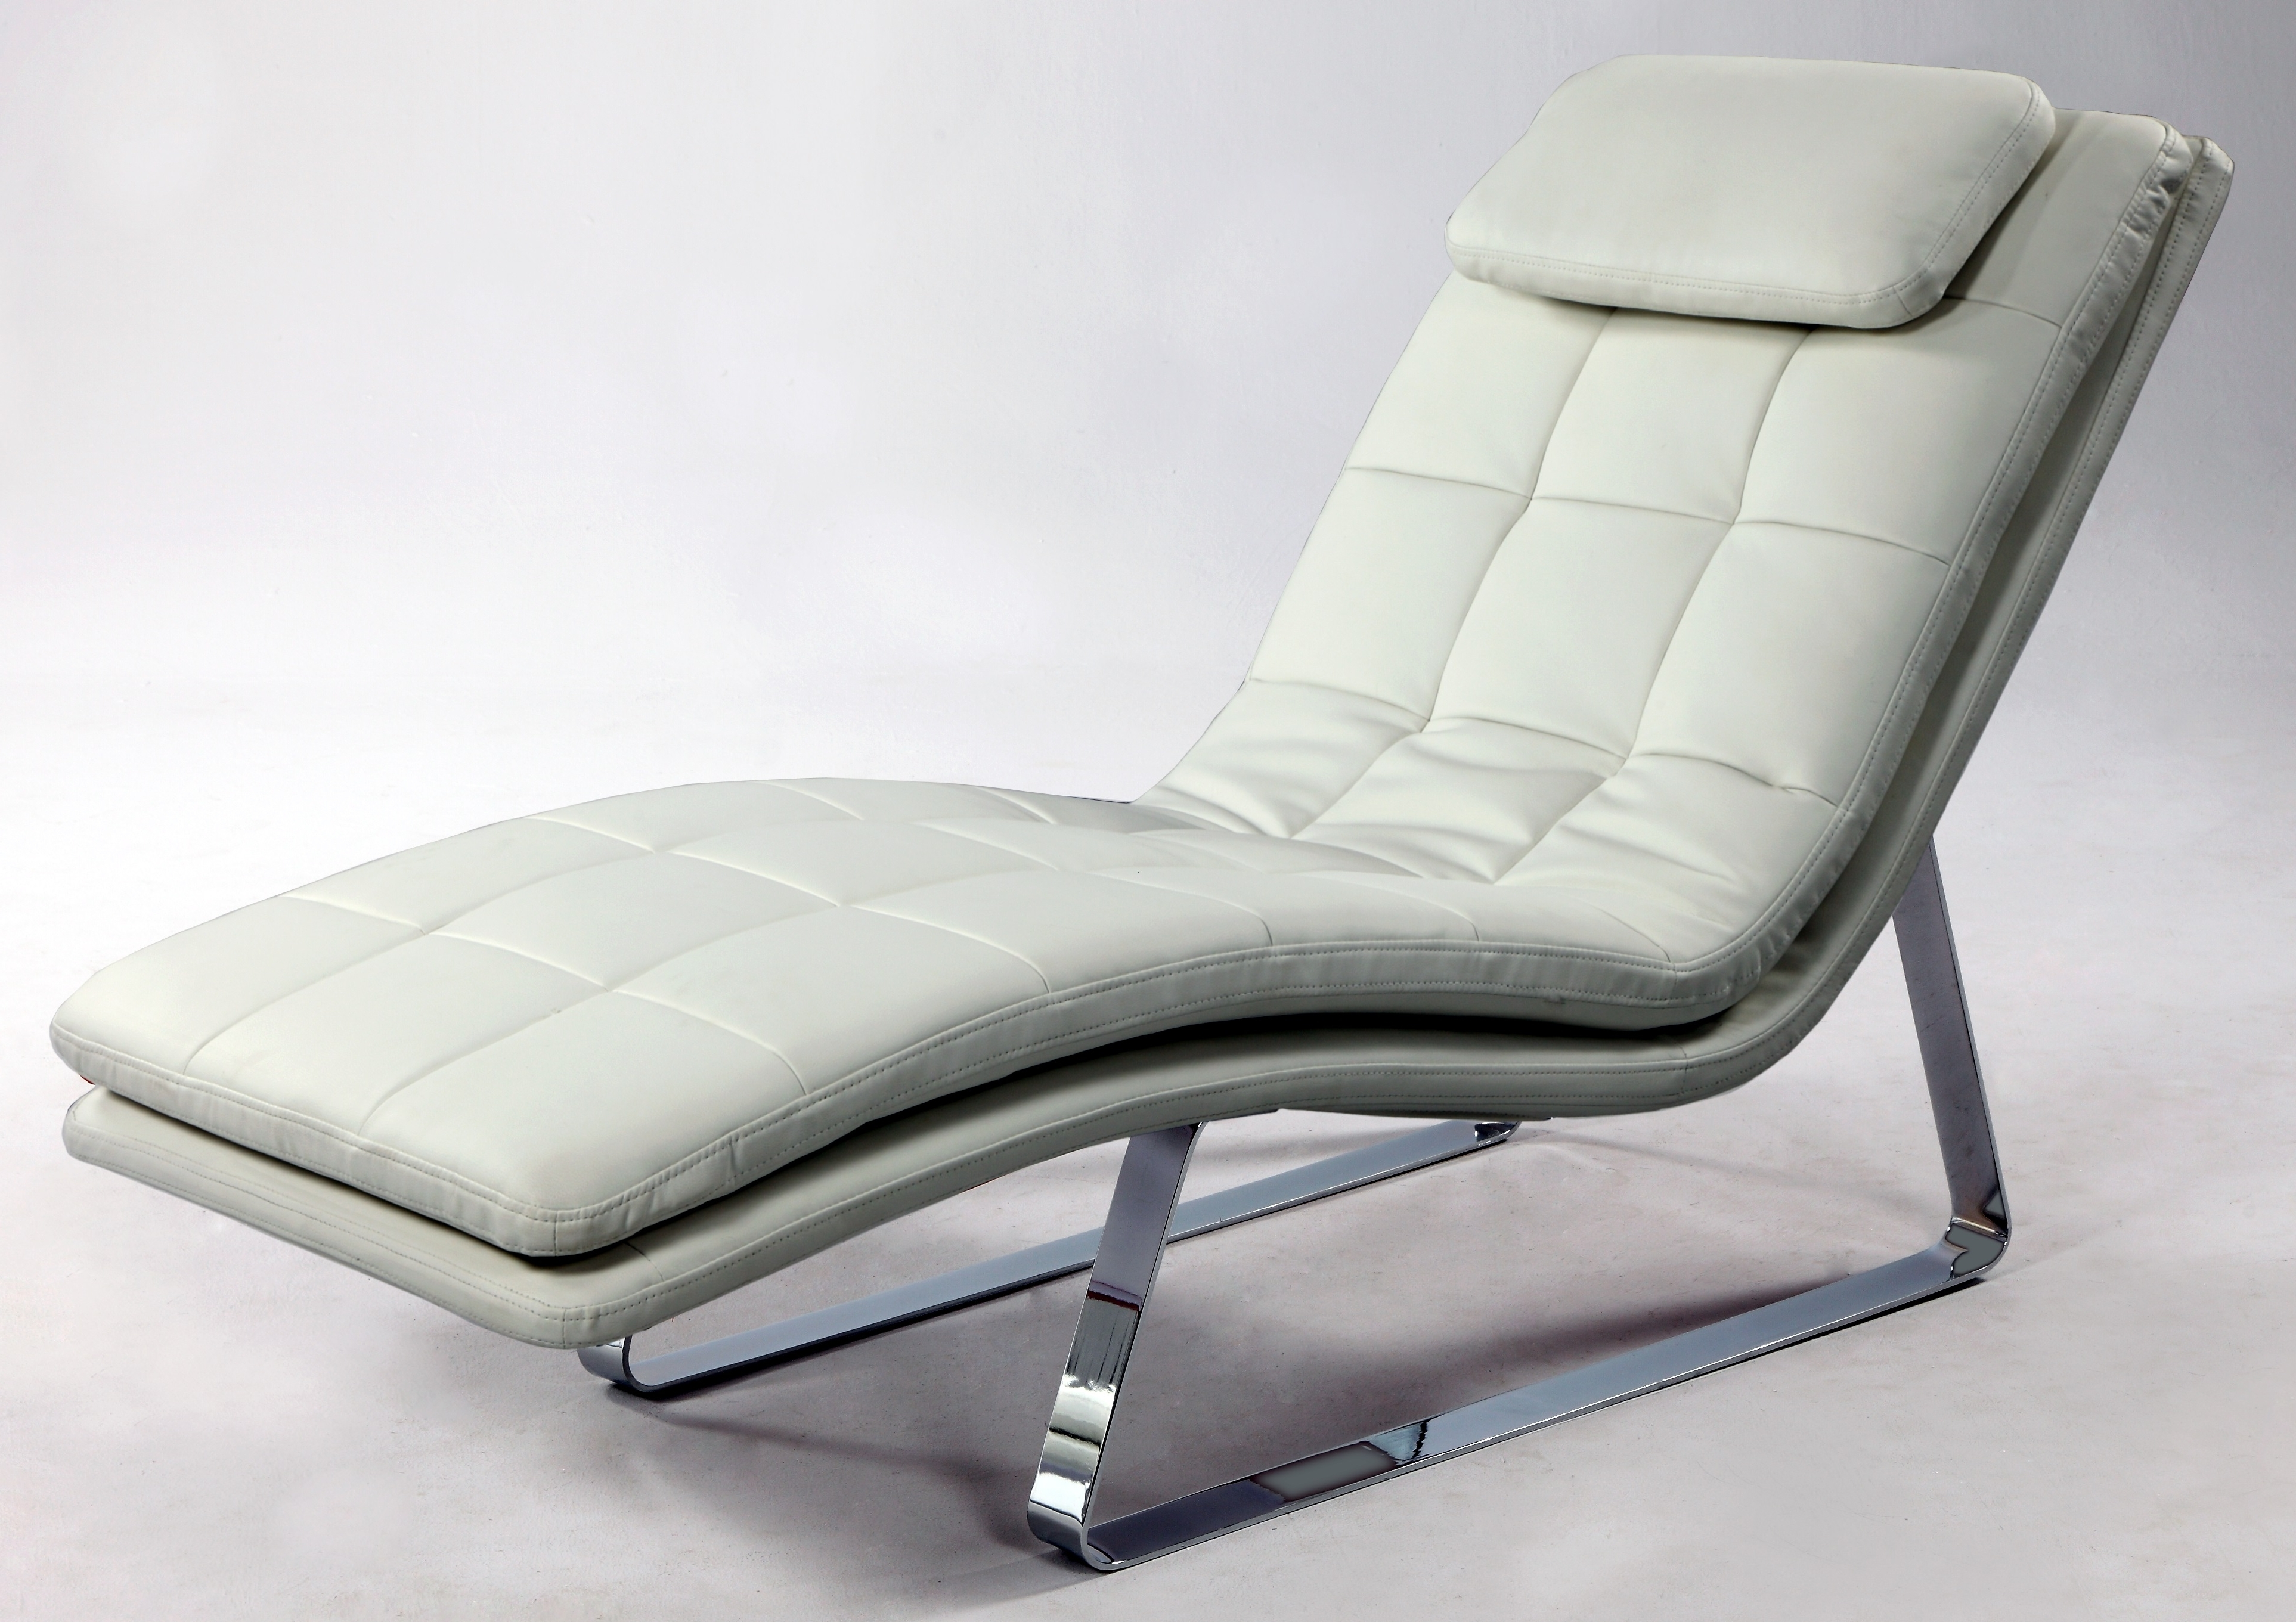 White Leather Chaises Intended For Trendy Full Bonded Leather Tufted Chaise Lounge With Chrome Legs New York (View 15 of 15)